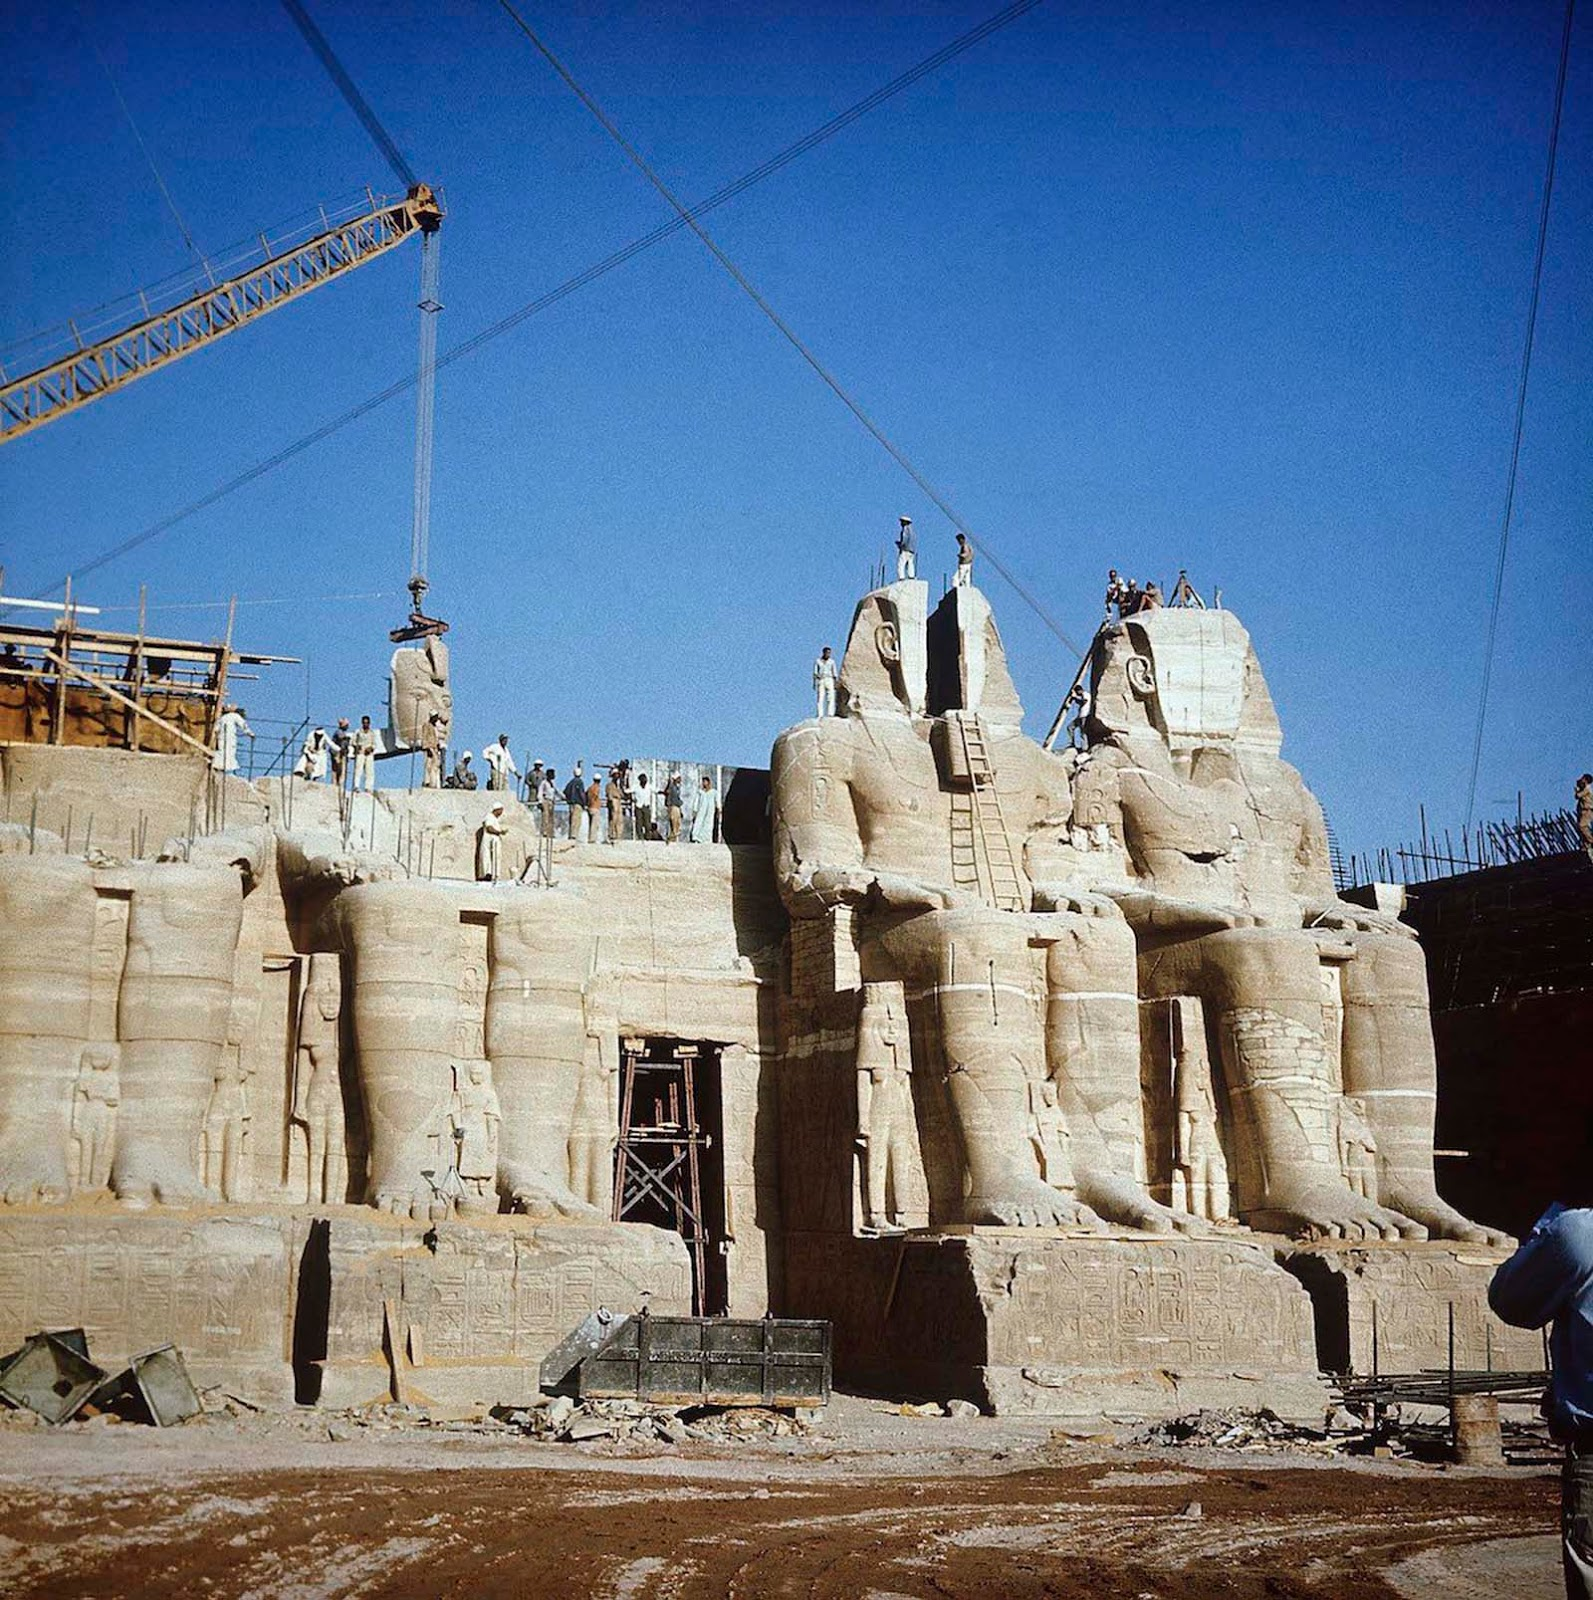 Between 1964 and 1968, the entire site was carefully cut into large blocks (up to 30 tons, averaging 20 tons), dismantled, lifted and reassembled in a new location.